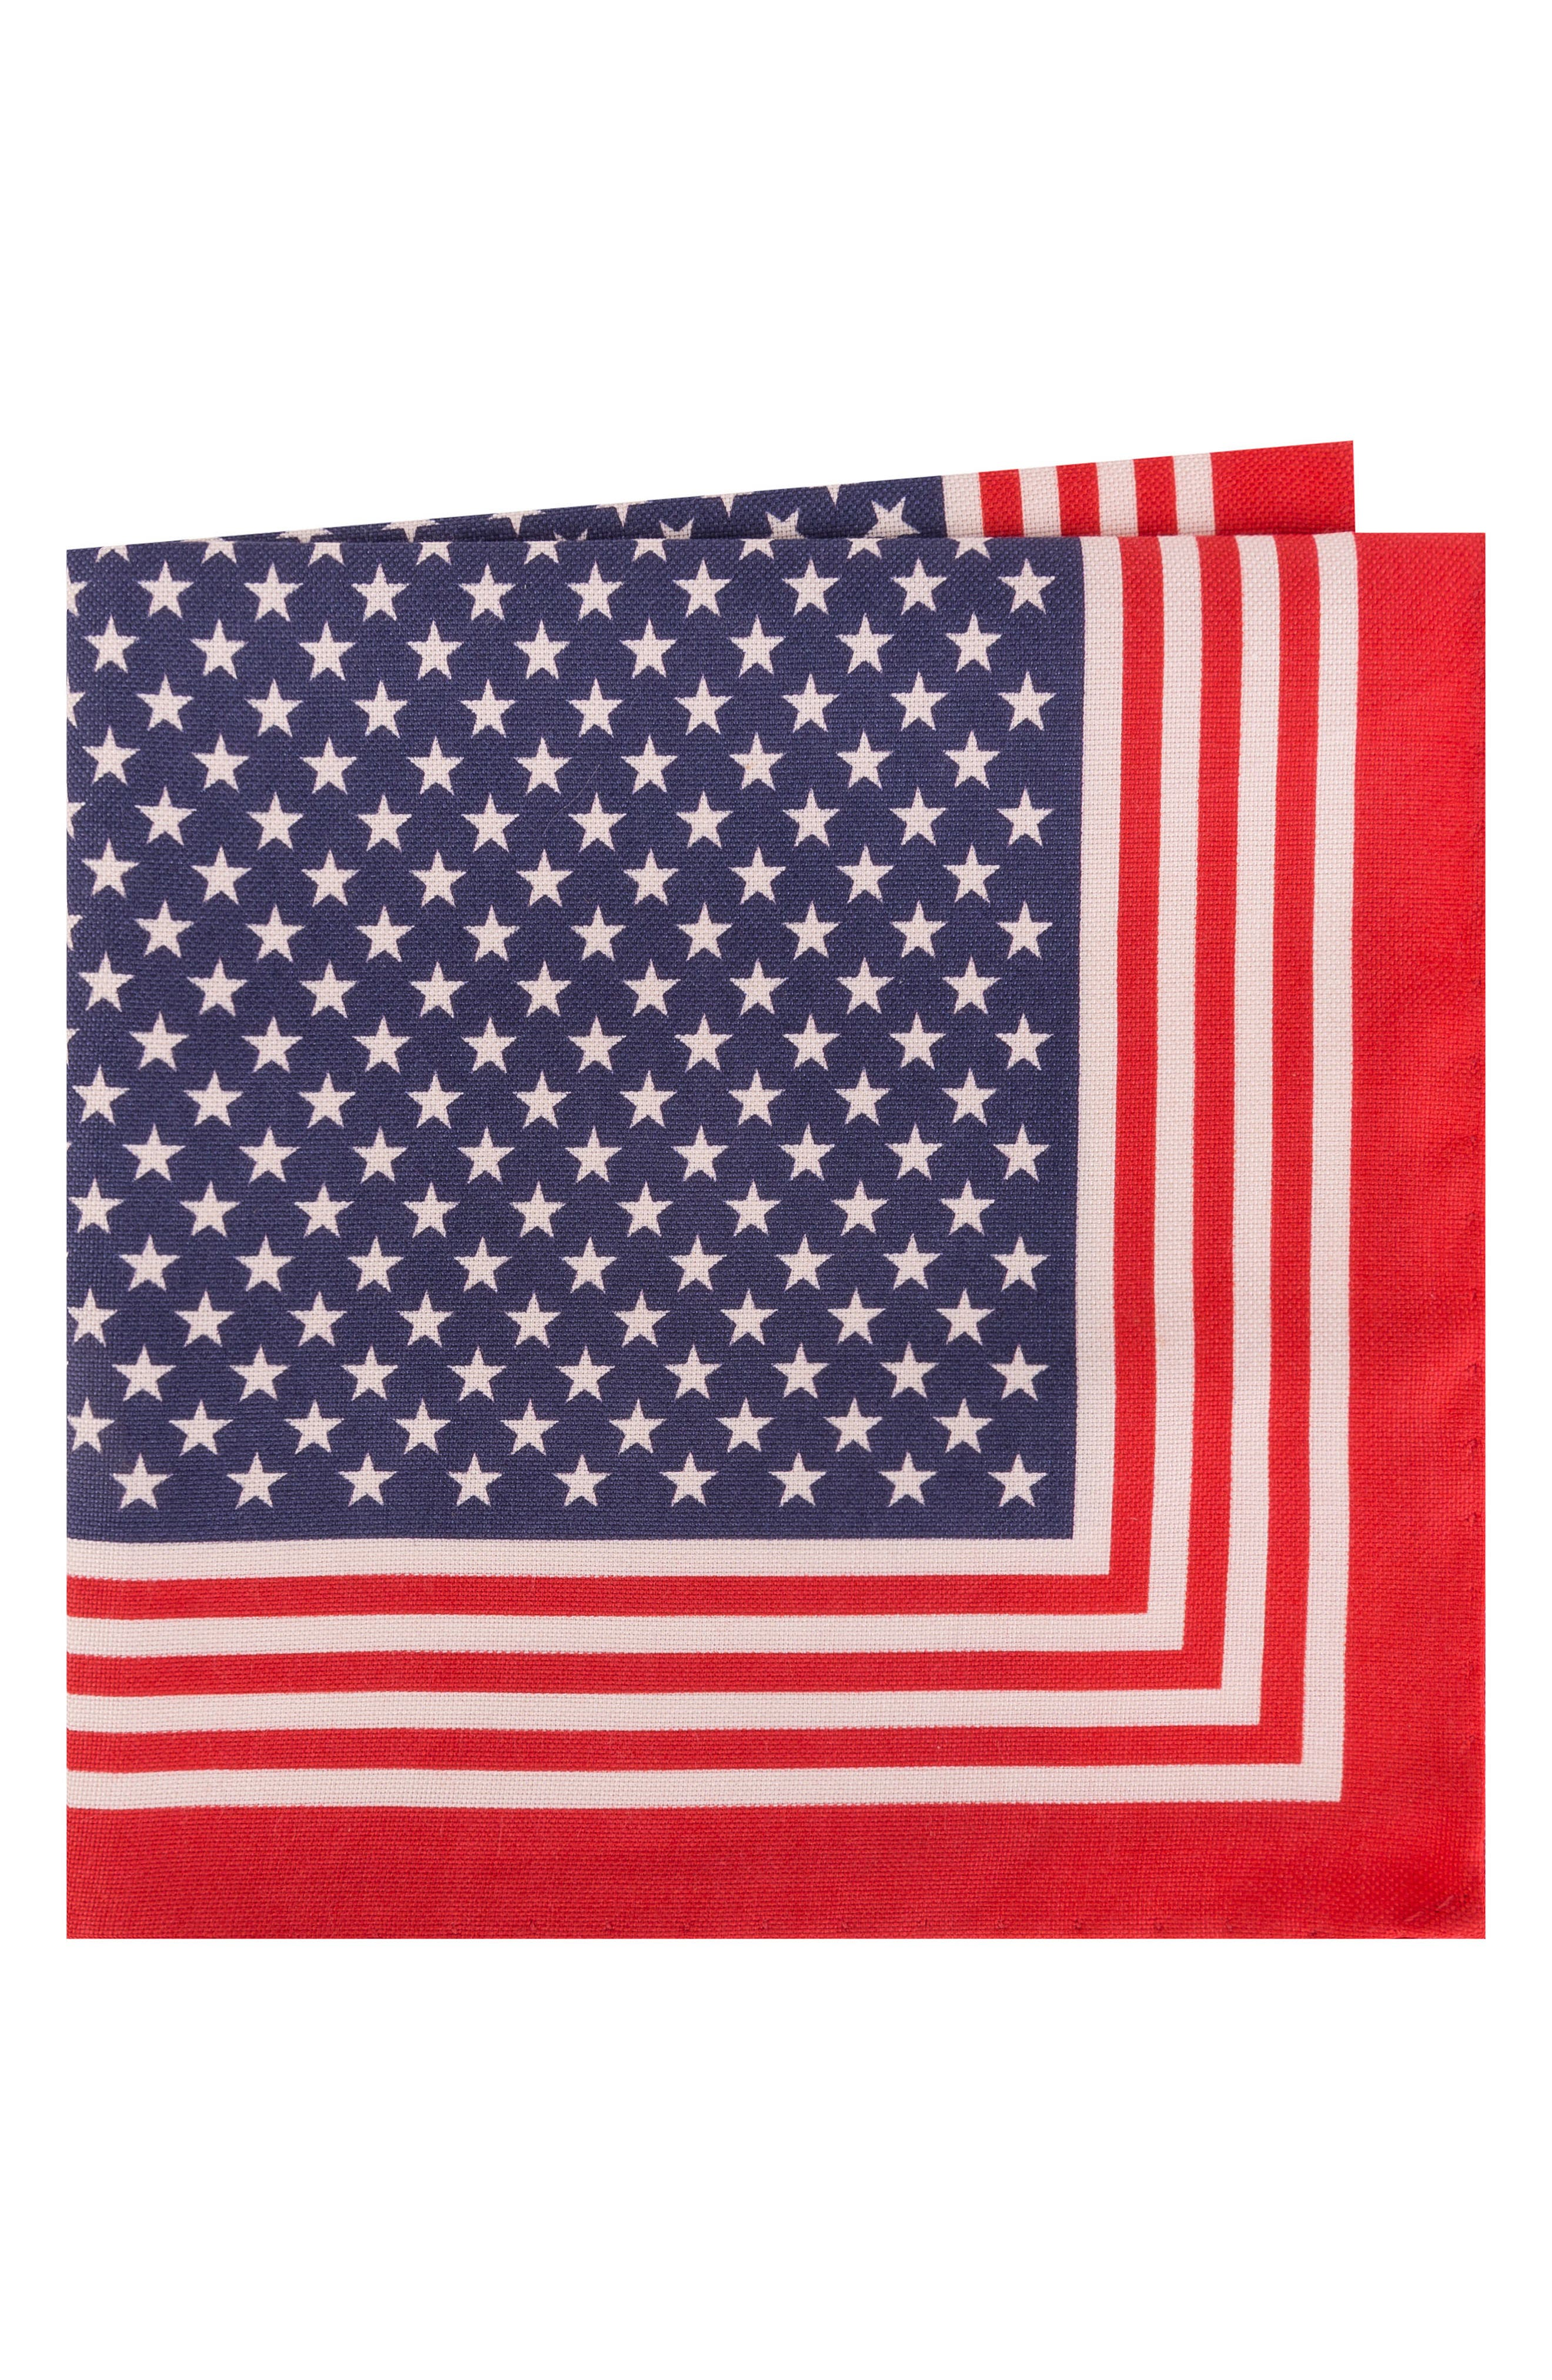 TED BAKER LONDON Stars & Stripes Cotton & Silk Pocket Square